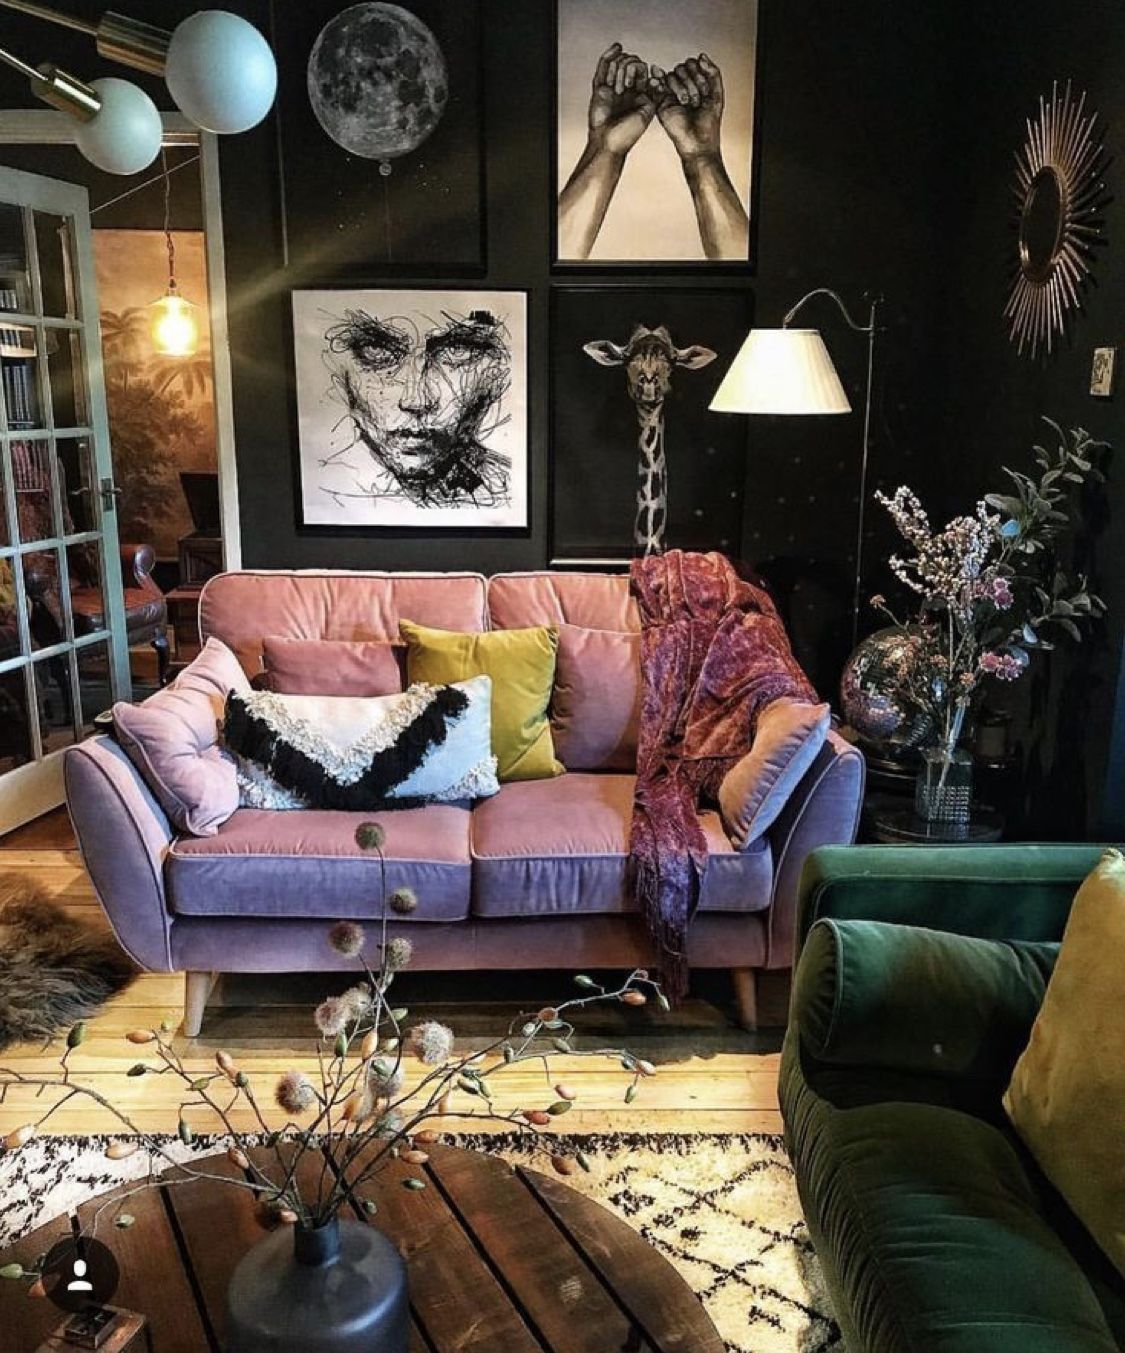 Pin By Li V21 On Aesthetic Ideas Rooms Eclectic Living Room Dark Eclectic Living Room Eclectic Living Room Design Living room aesthetic dark